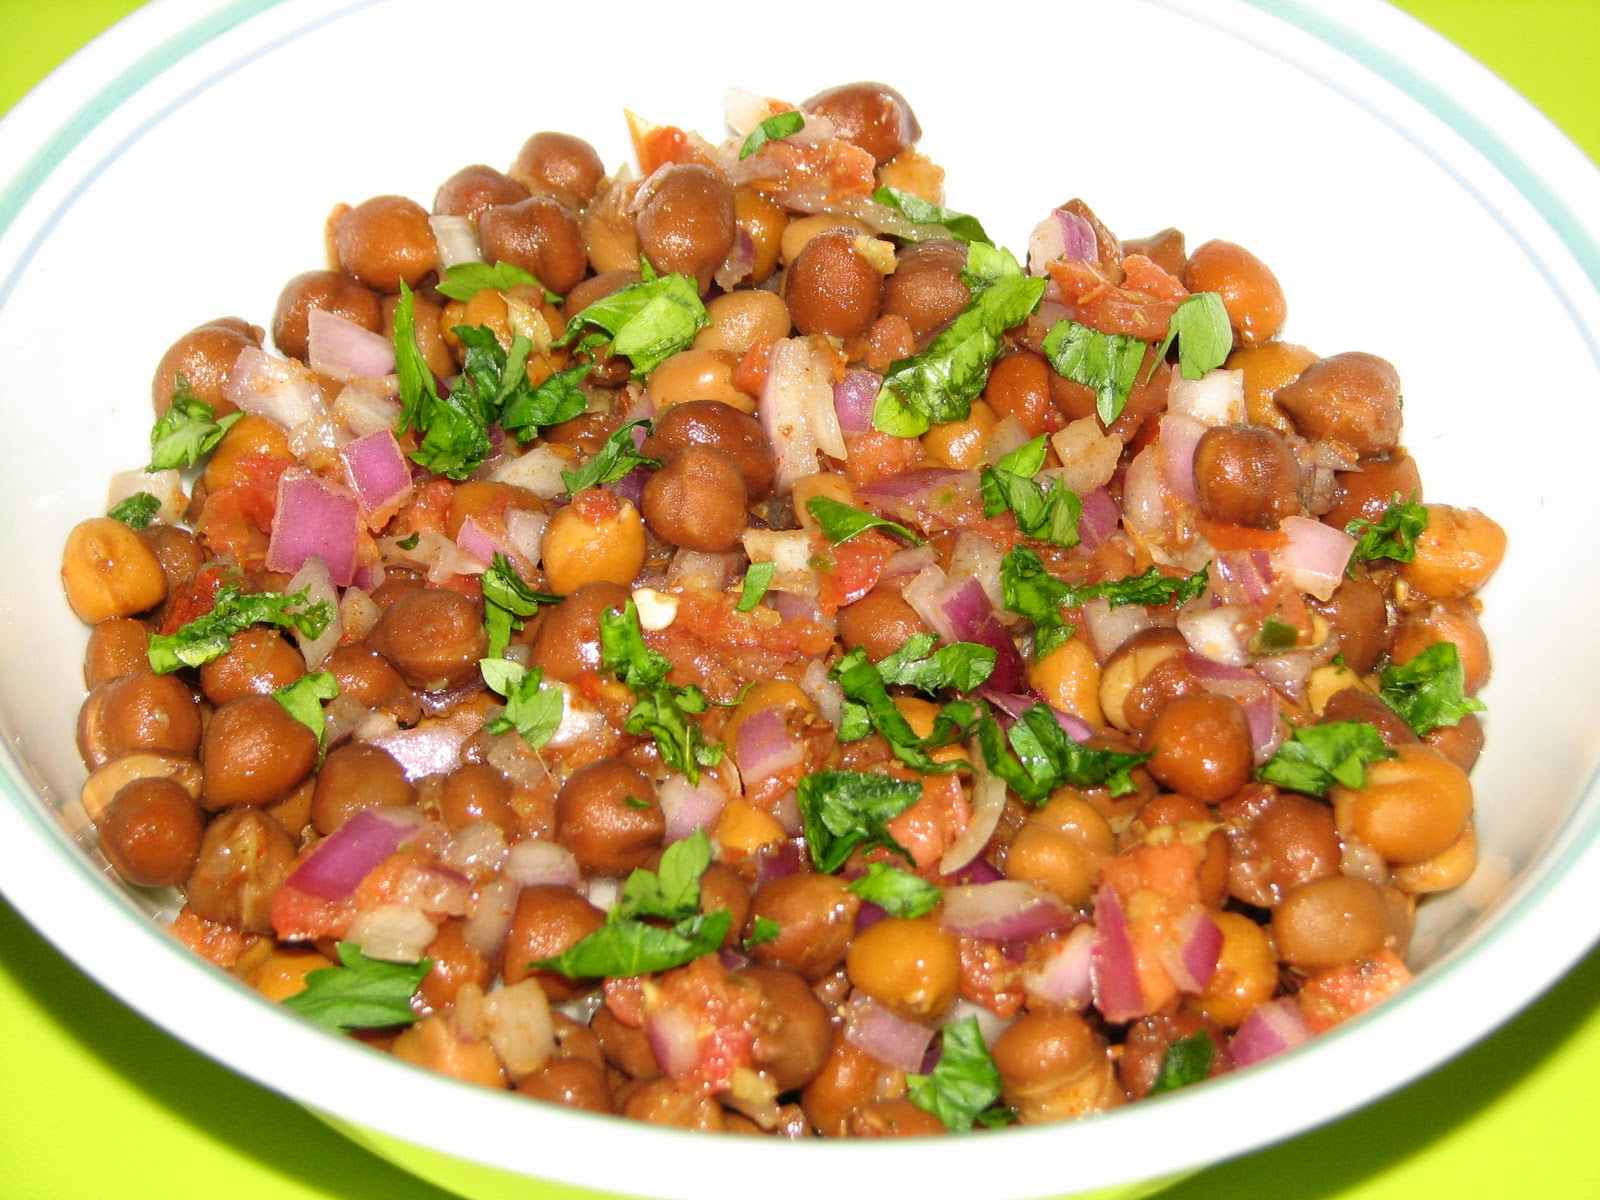 In a bowl add chana, onion and tomato and mix well